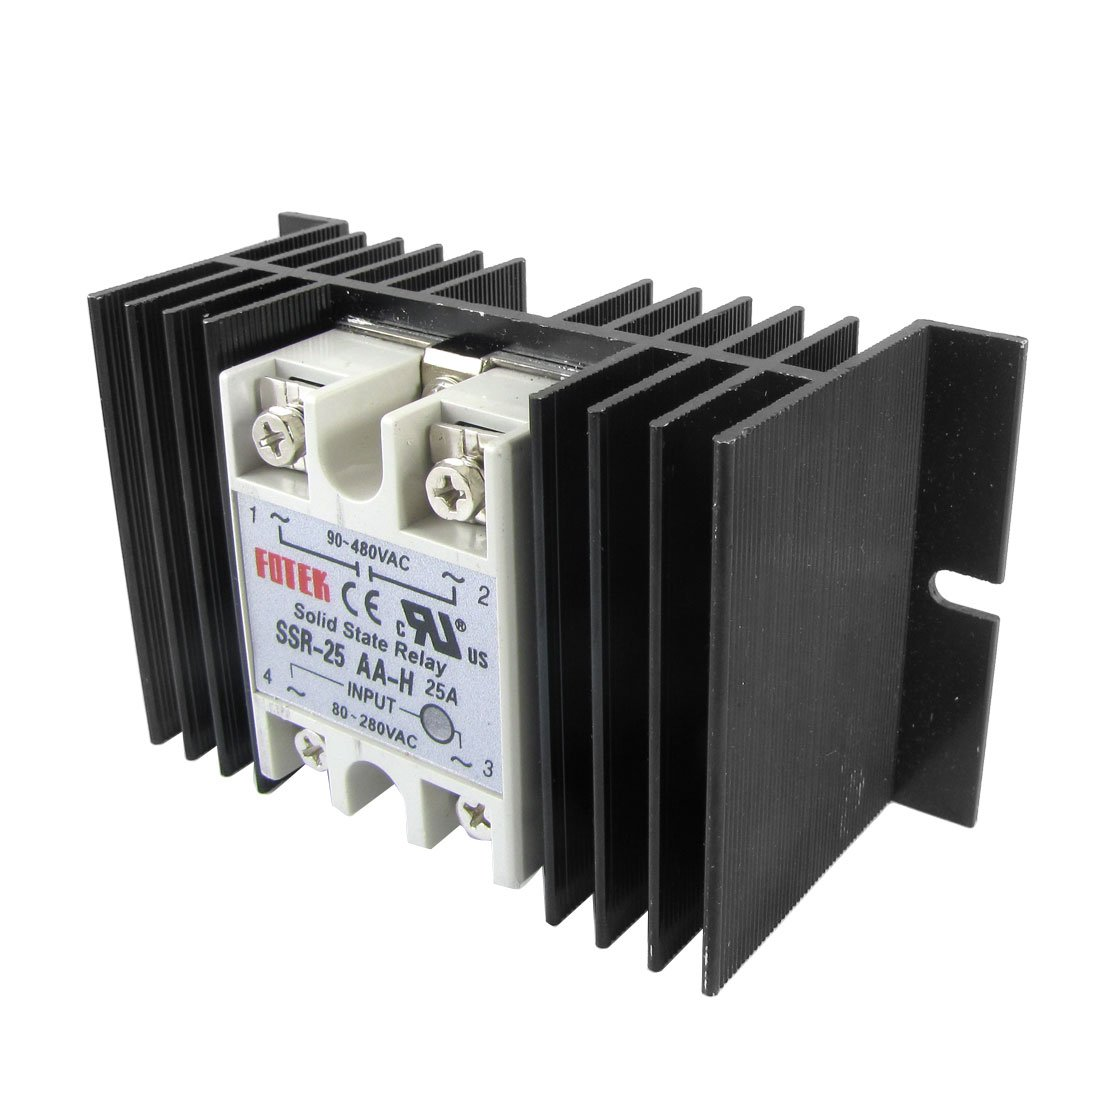 Single Phase Solid State Relay Ssr 25aa H 25a 80 280v Ac 90 480v Current Transformer In W Heat Sink Car Motorbike